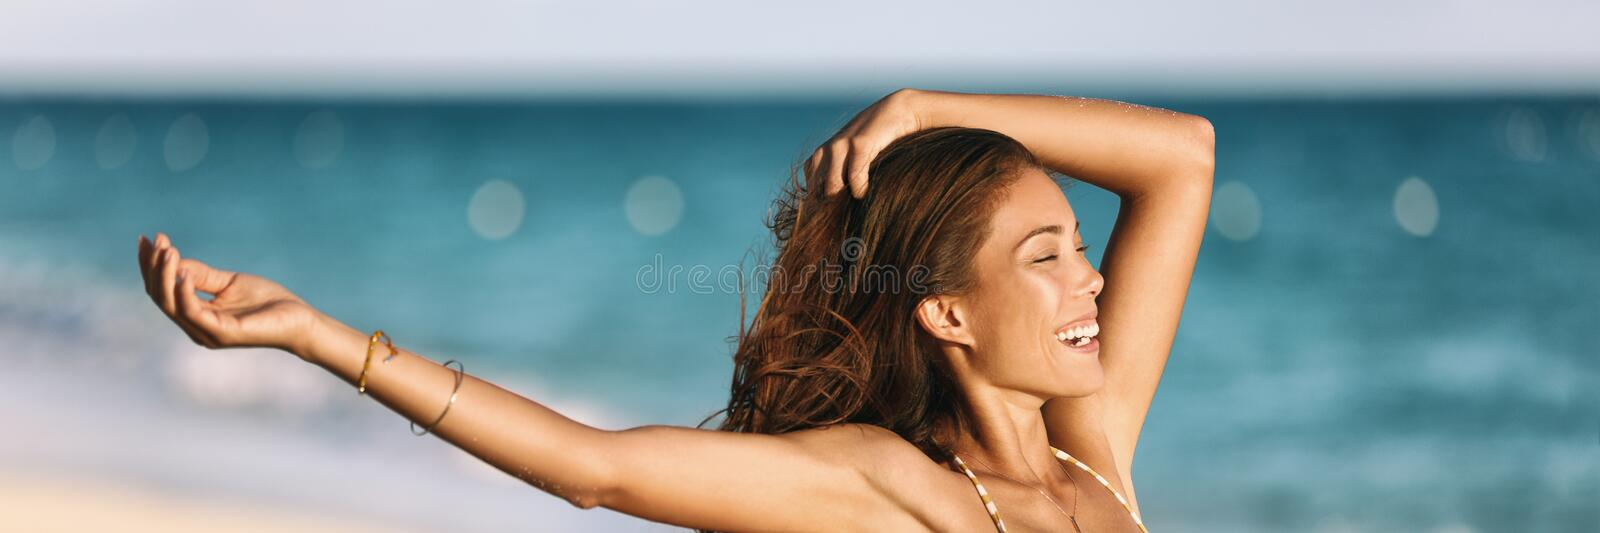 Banner happy woman carefree with arms up smiling laughing in ocean beach panoramic background on tropical Caribbean summer. Vacation panorama. Asian girl stock image